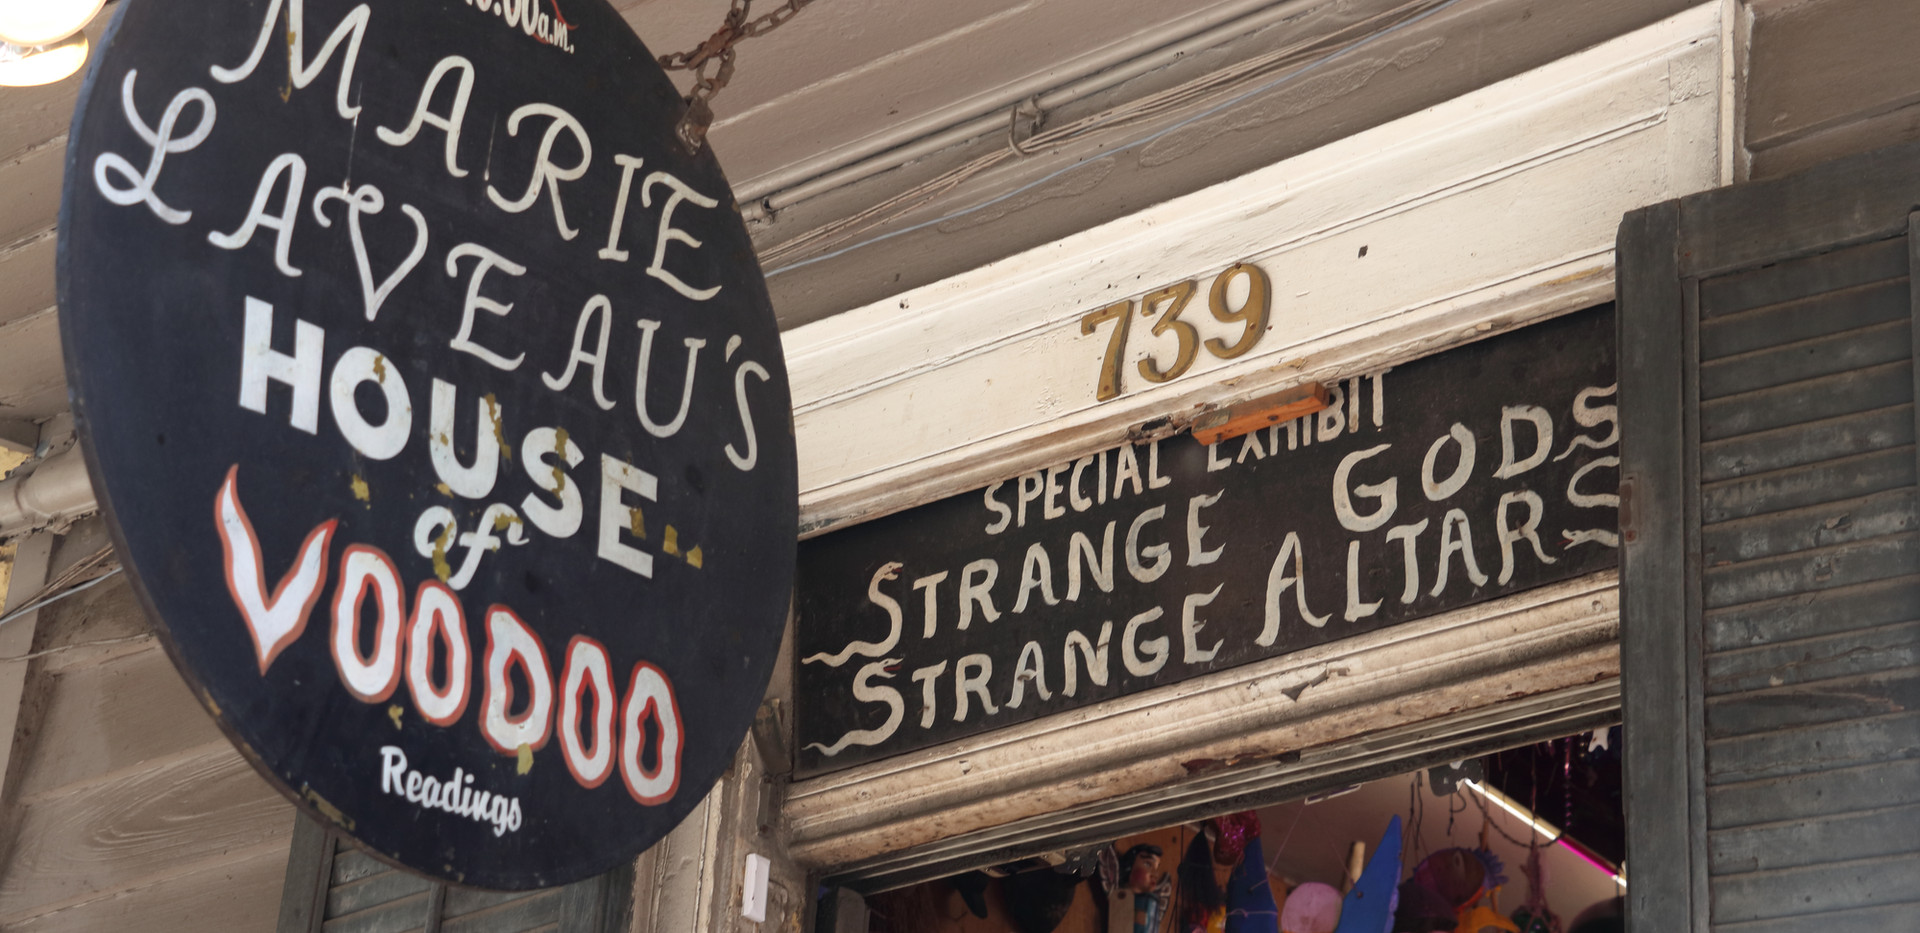 Madame Laveau's House of Voodoo